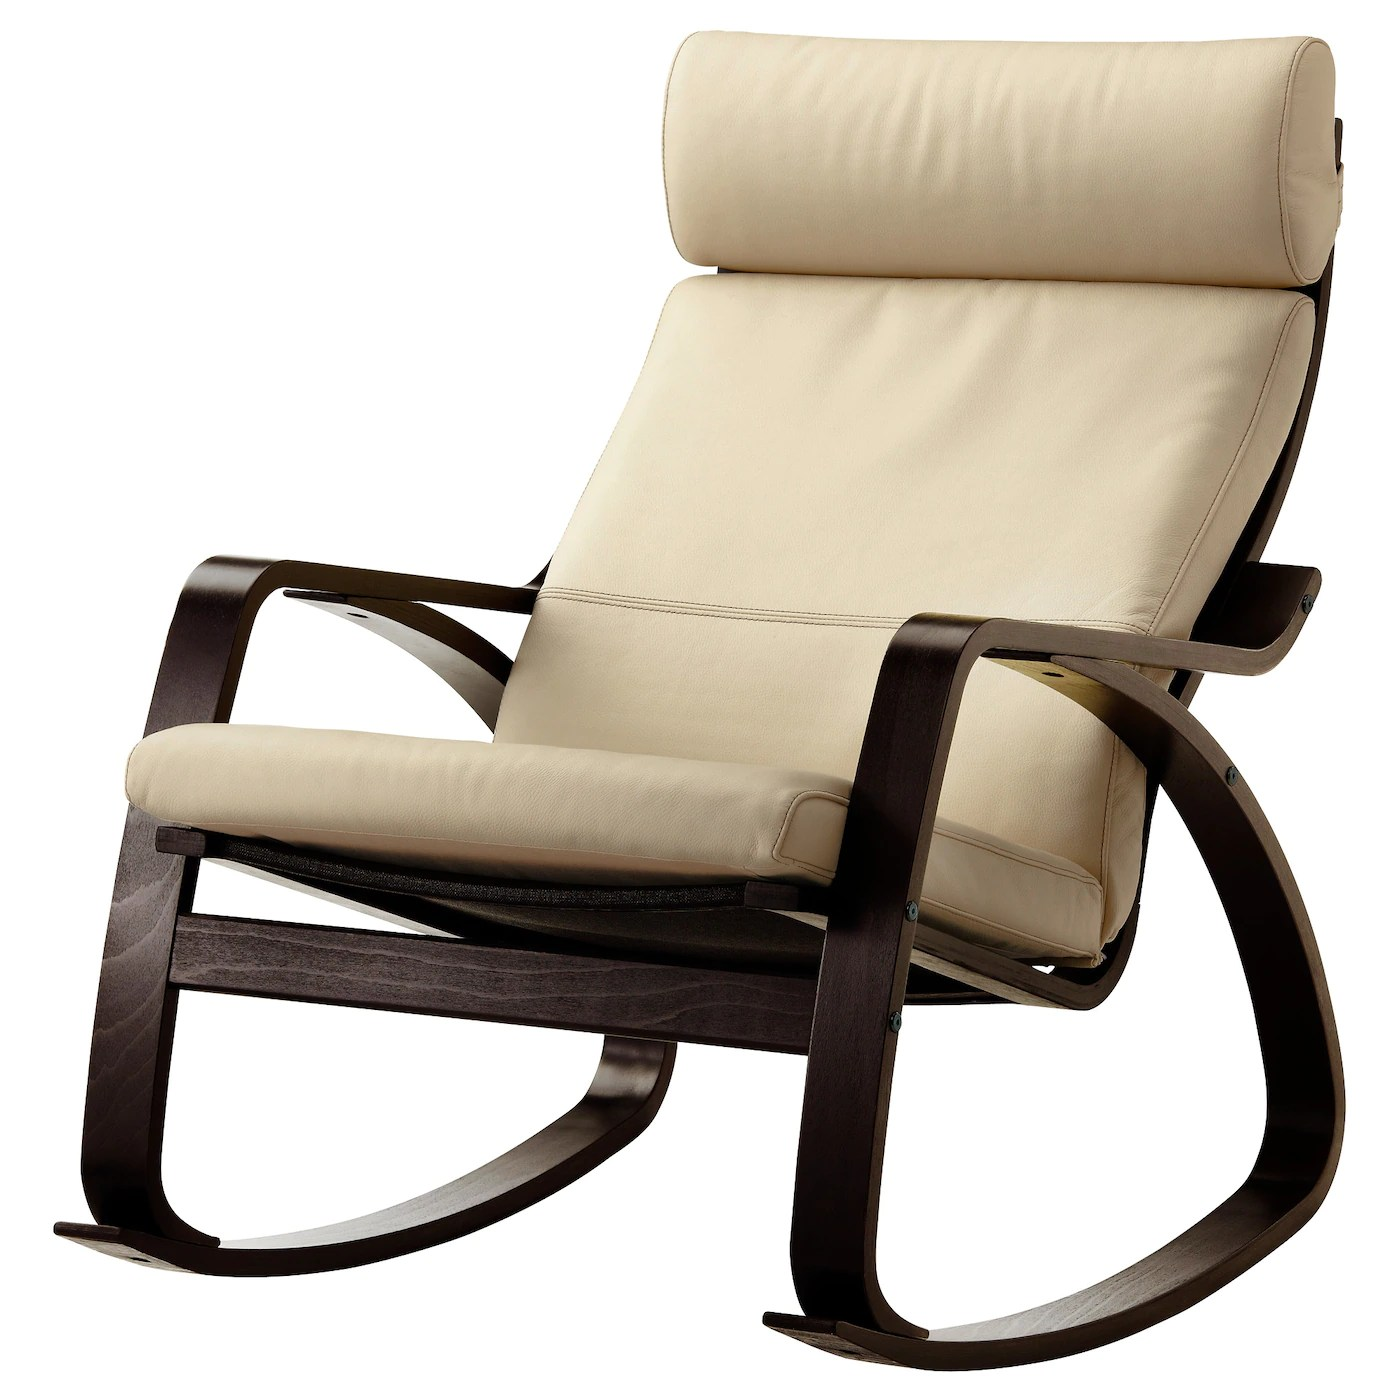 swing chair penang gym video poang ikea rocking the high back gives good support for your neck